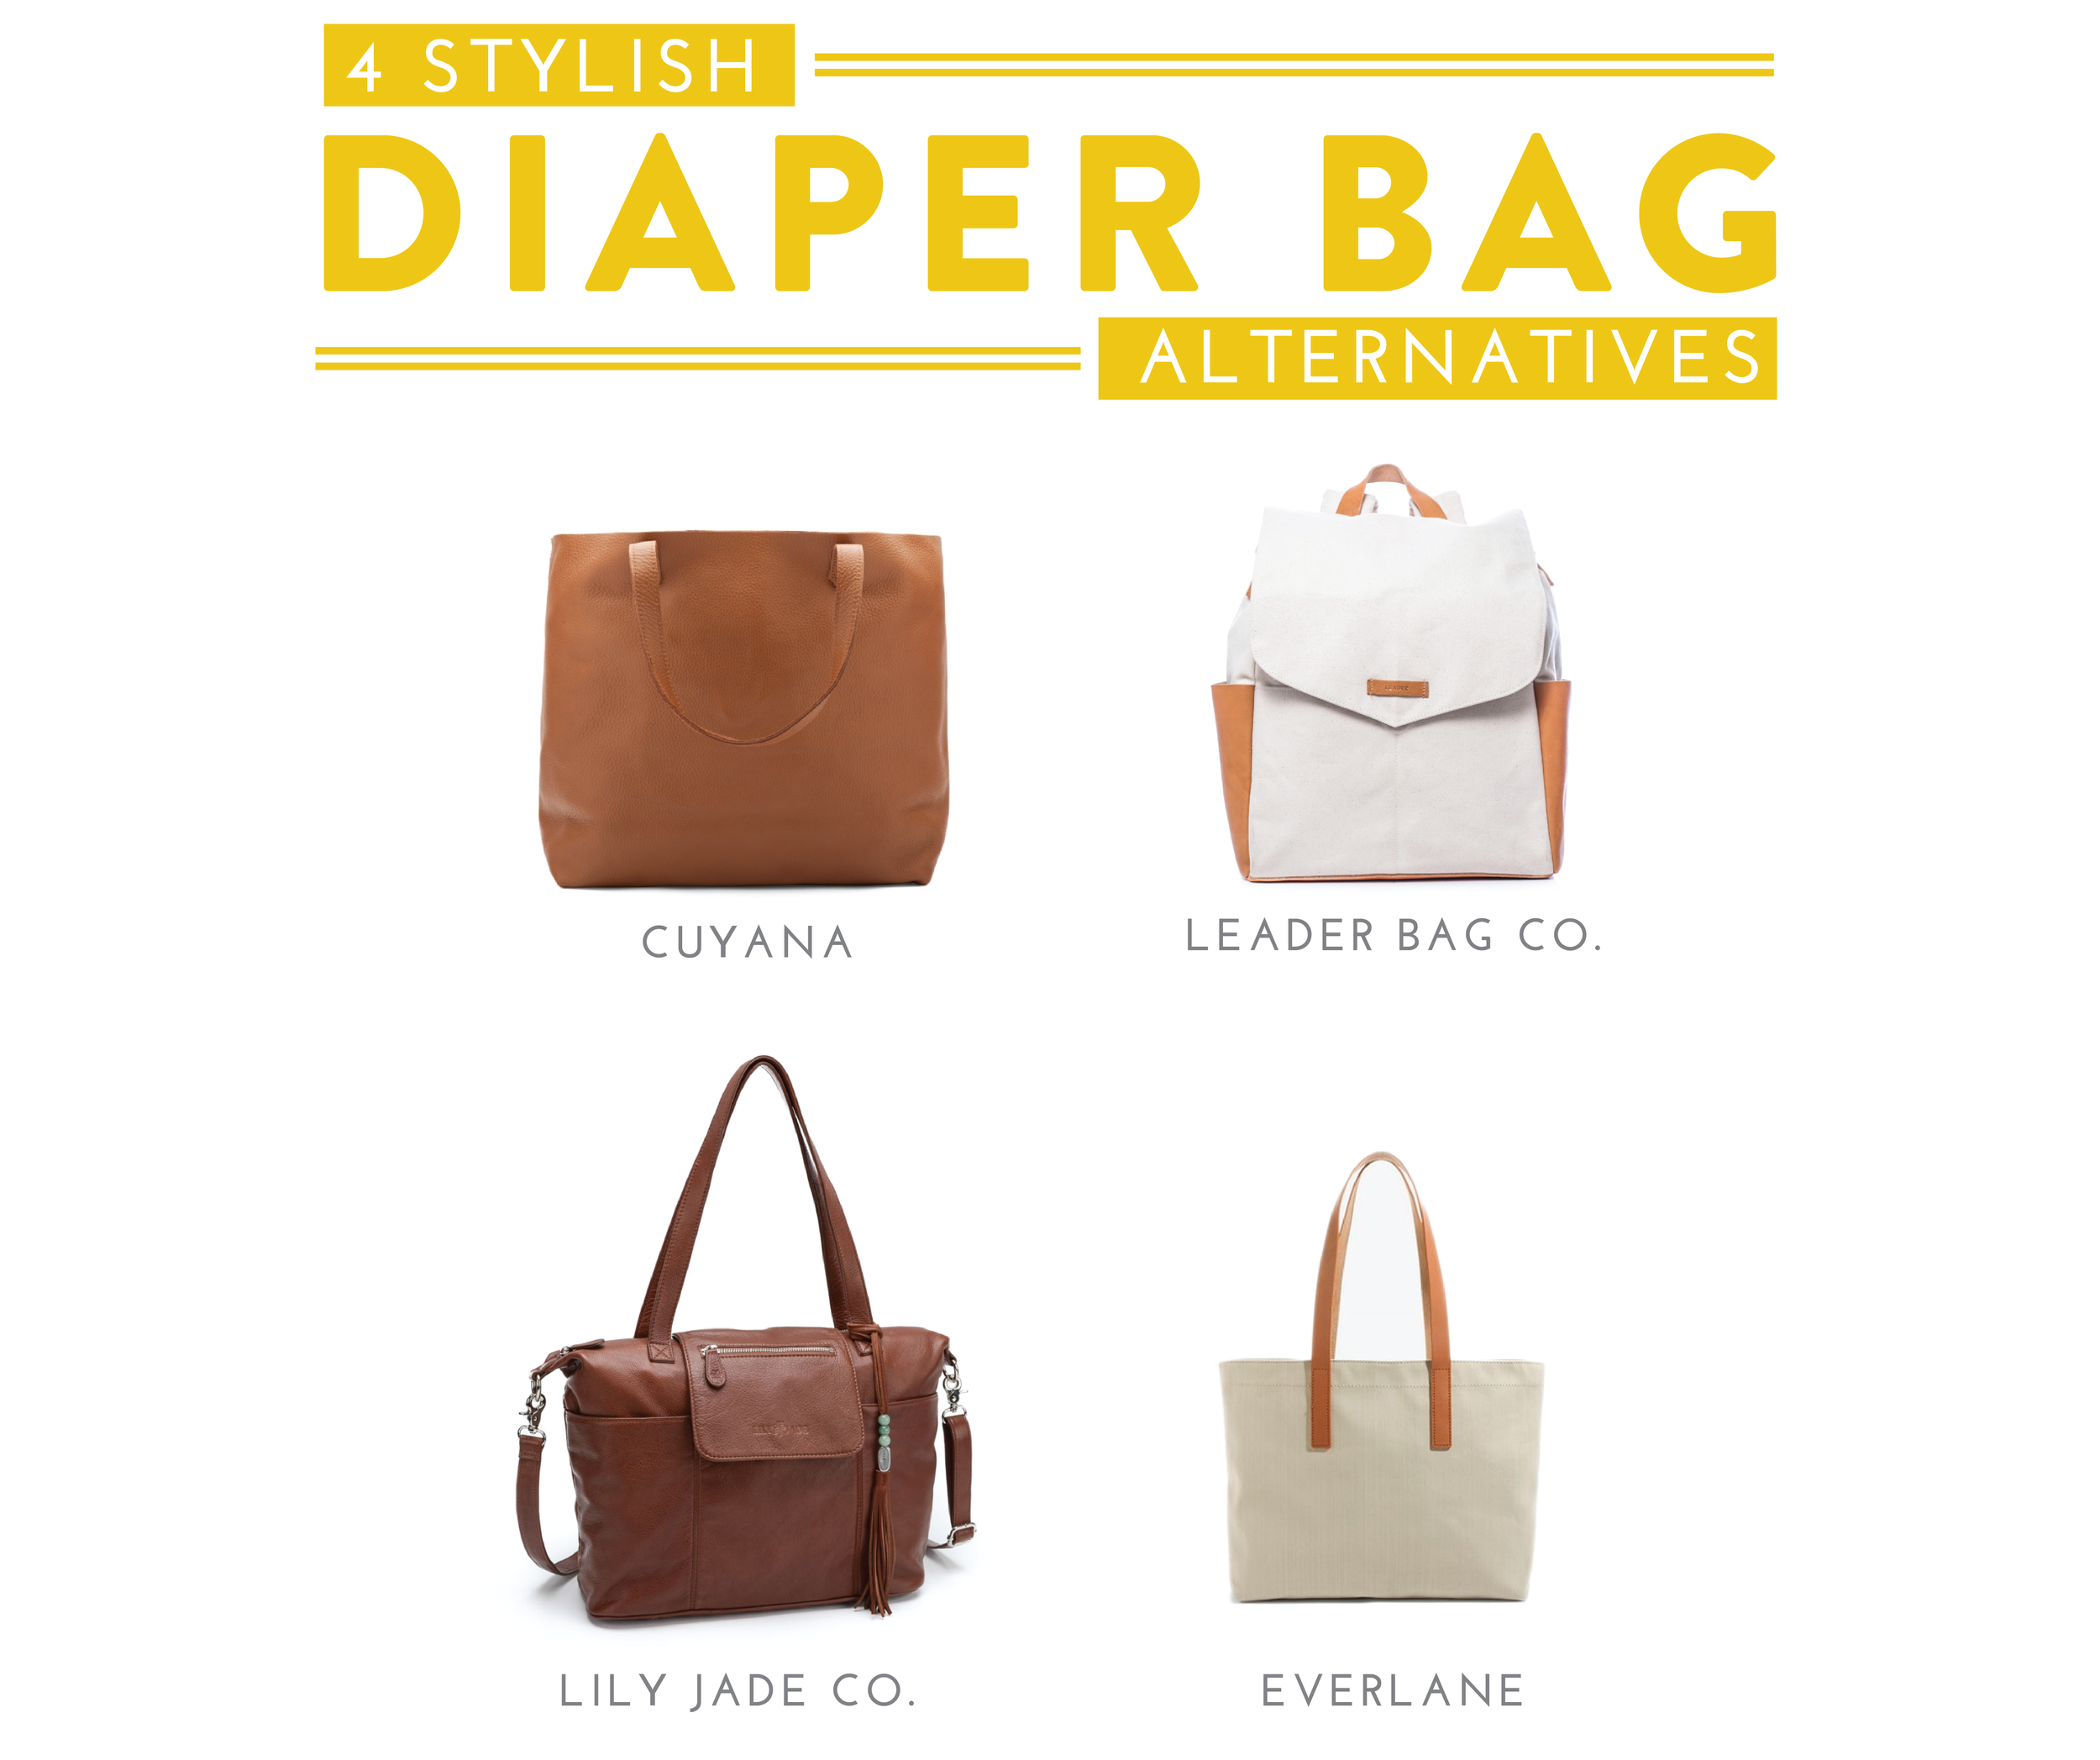 diaperbags-01